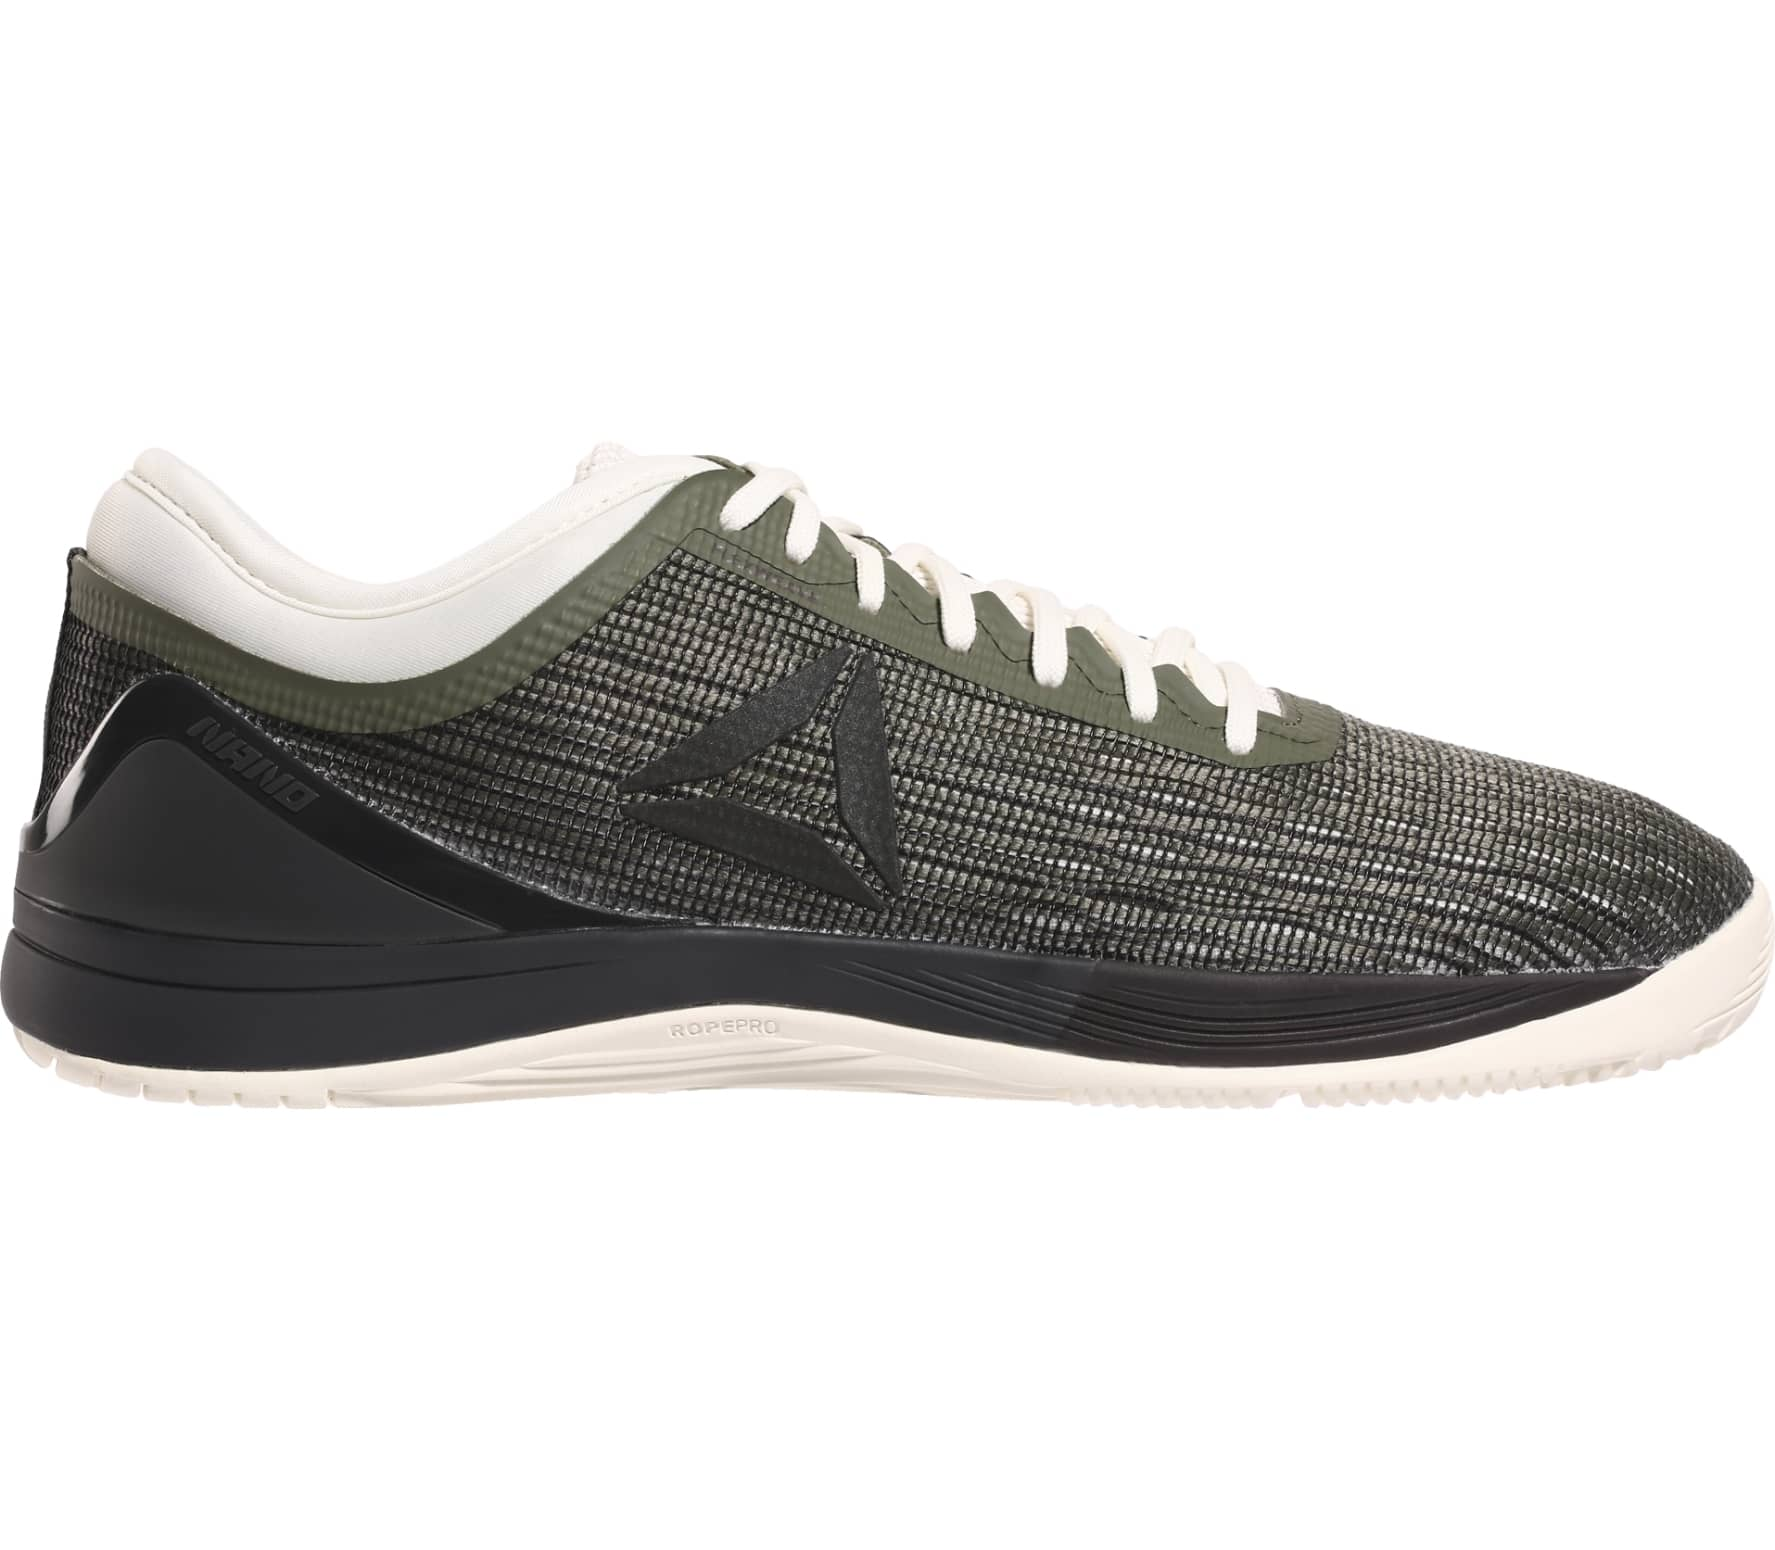 Reebok Crossfit Nano 8.0 Hunter Herren Trainingsschuh (grün)